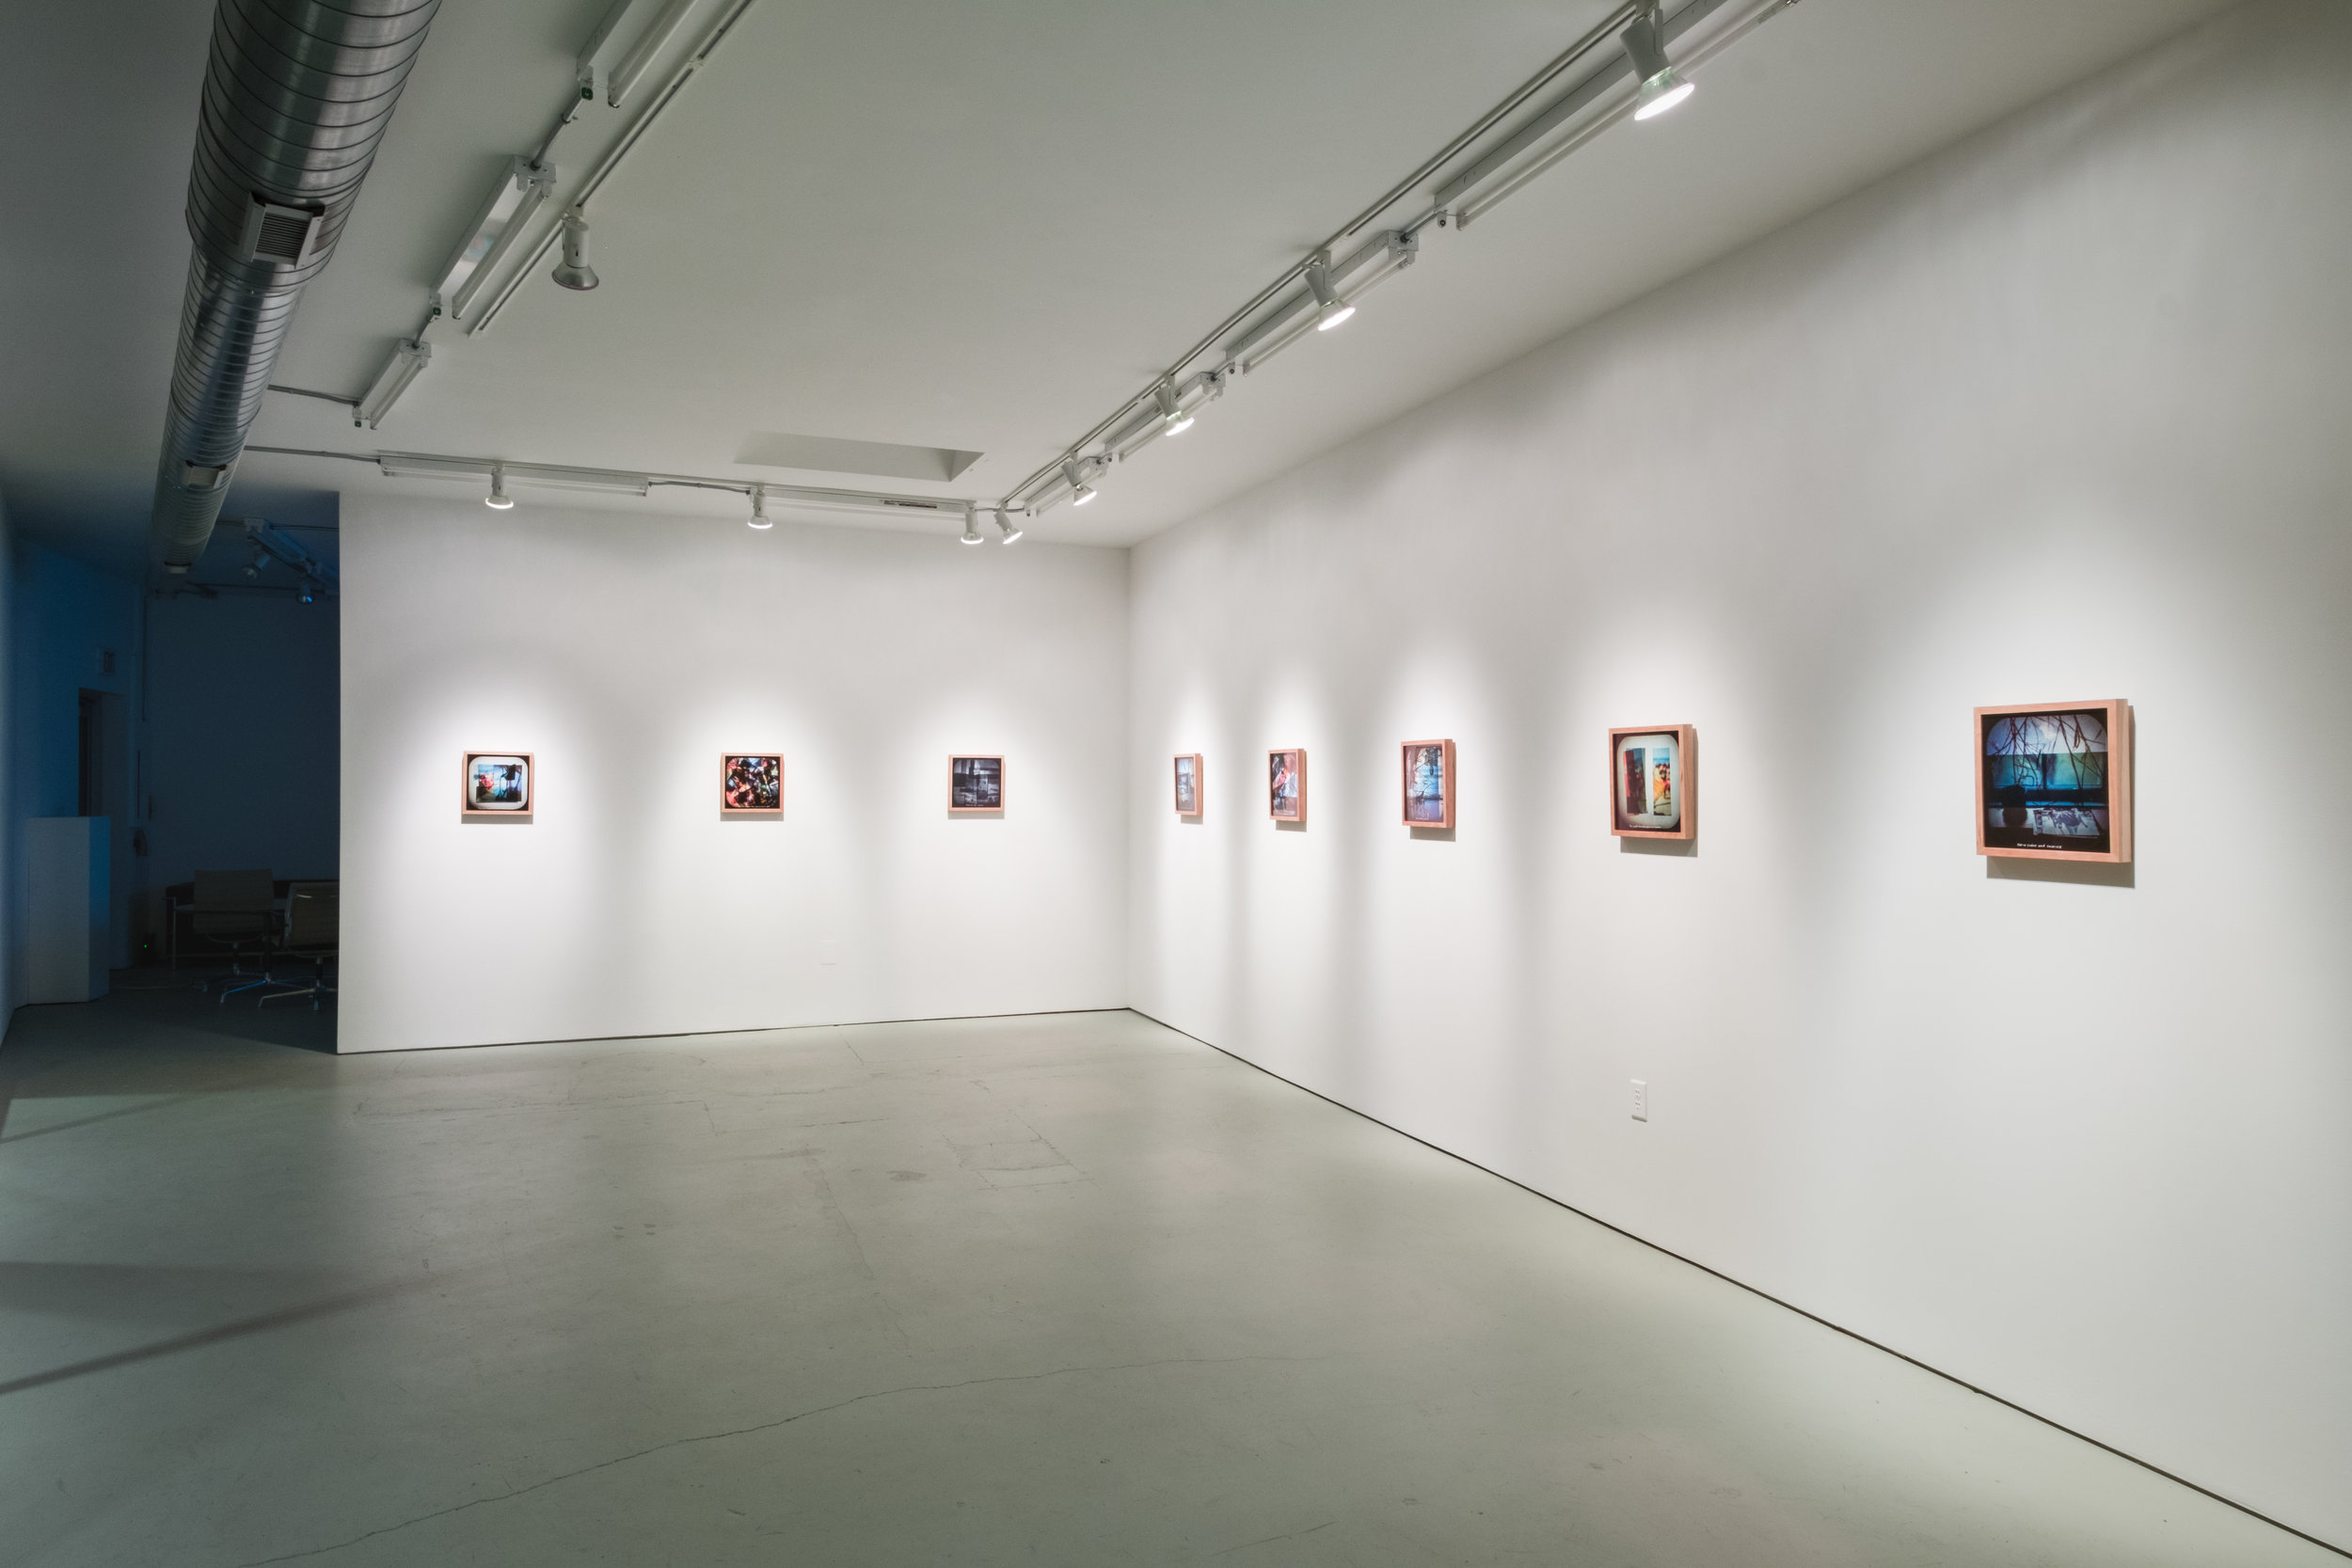 Installation view at The Green Gallery, April 20th – June 1st, 2019 – Milwaukee, Wisconsin